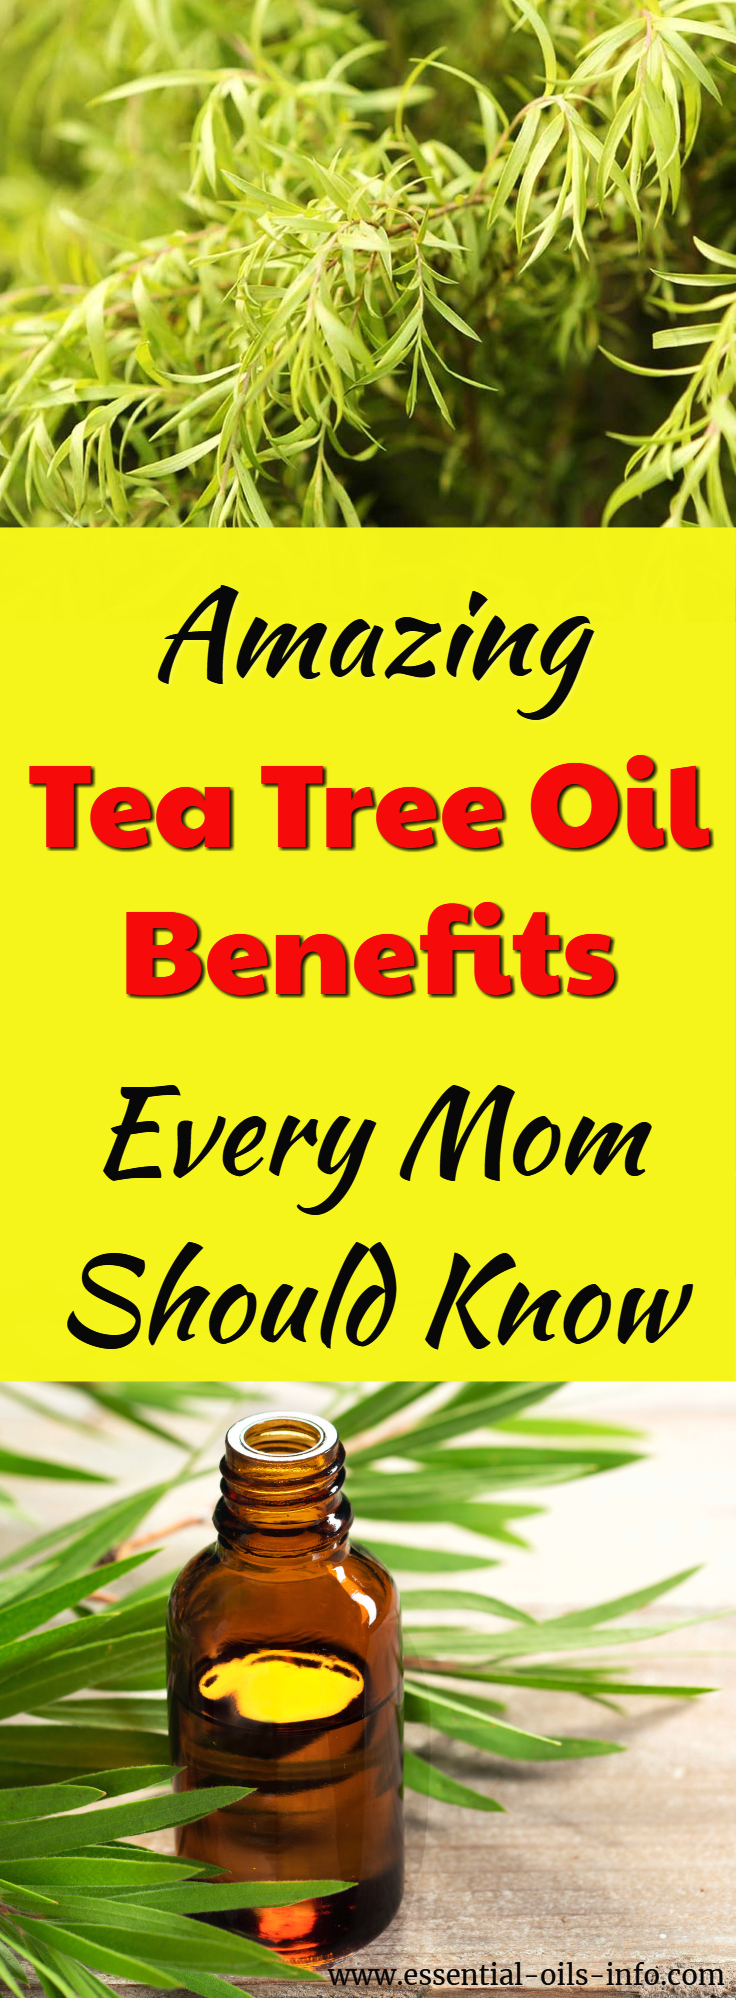 Find out the most amazing tea tree oil facts and get recipes, benefits and uses for tea tree essential oil.